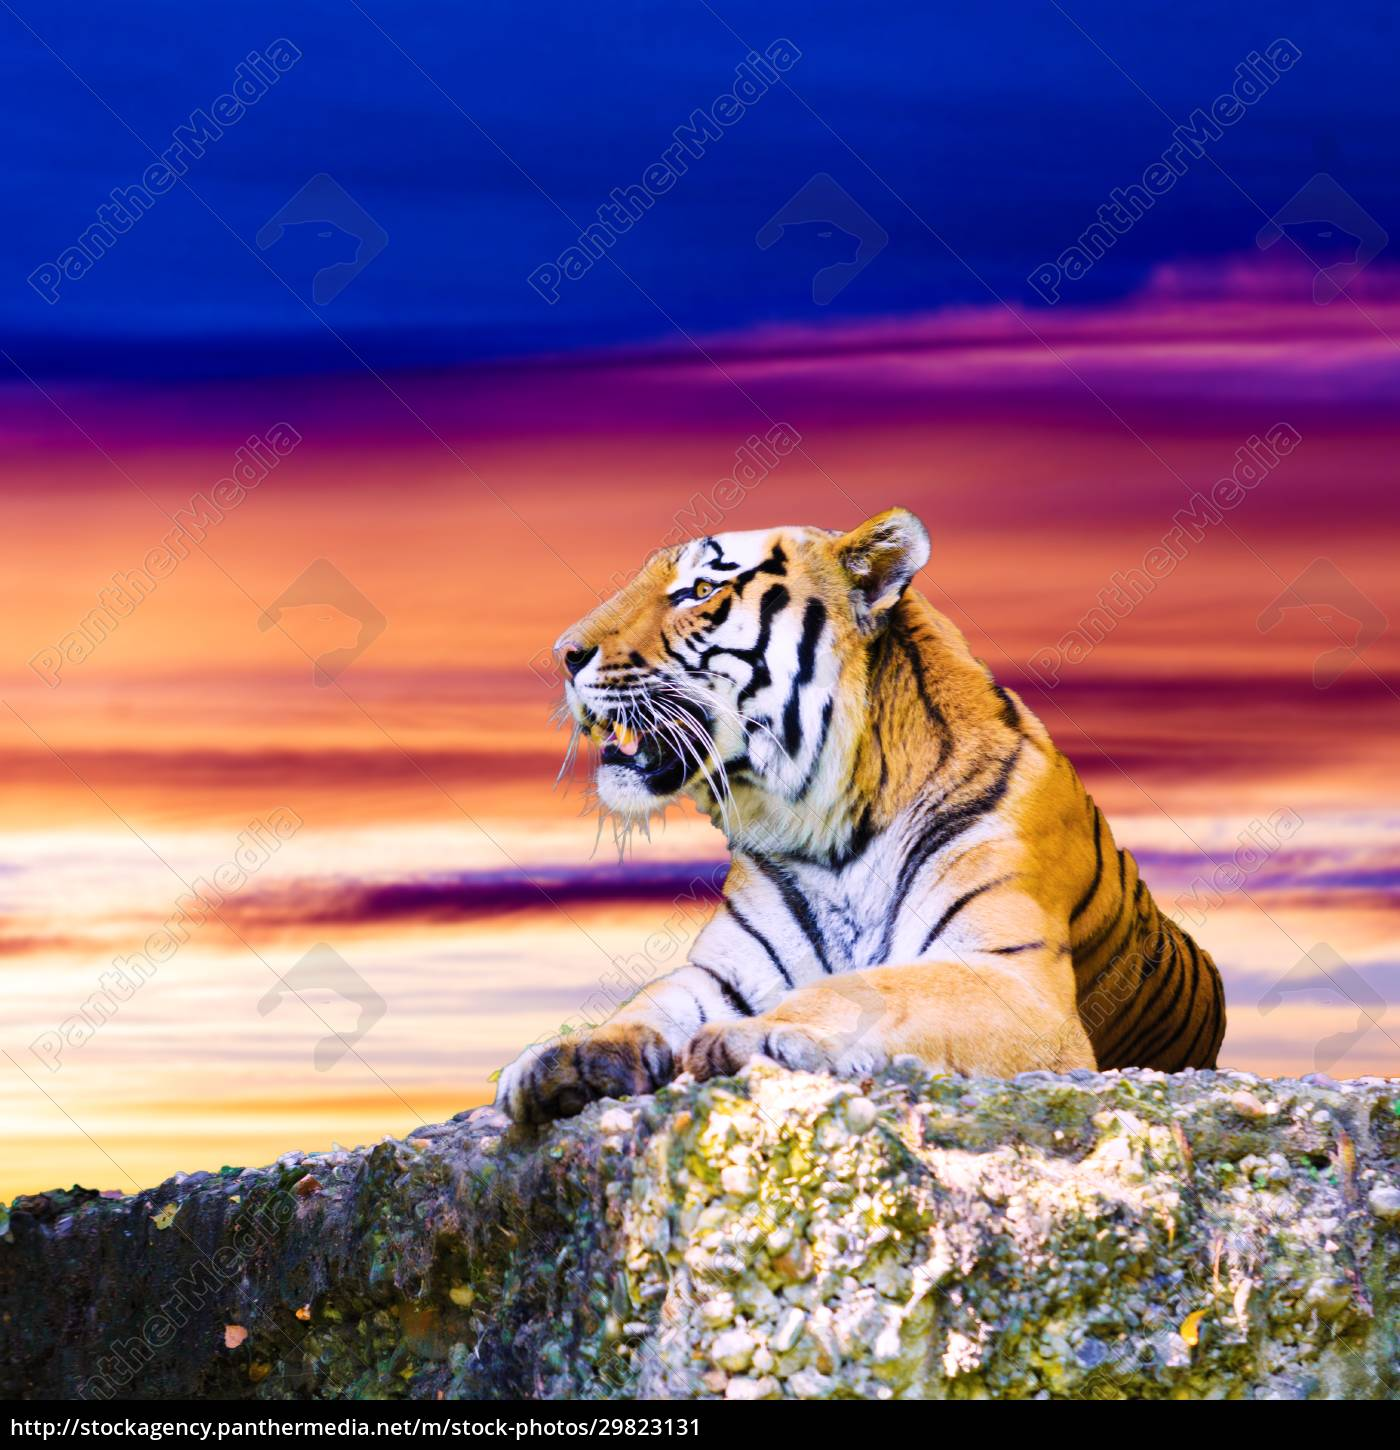 tiger, portrait, on, the, rock, with - 29823131